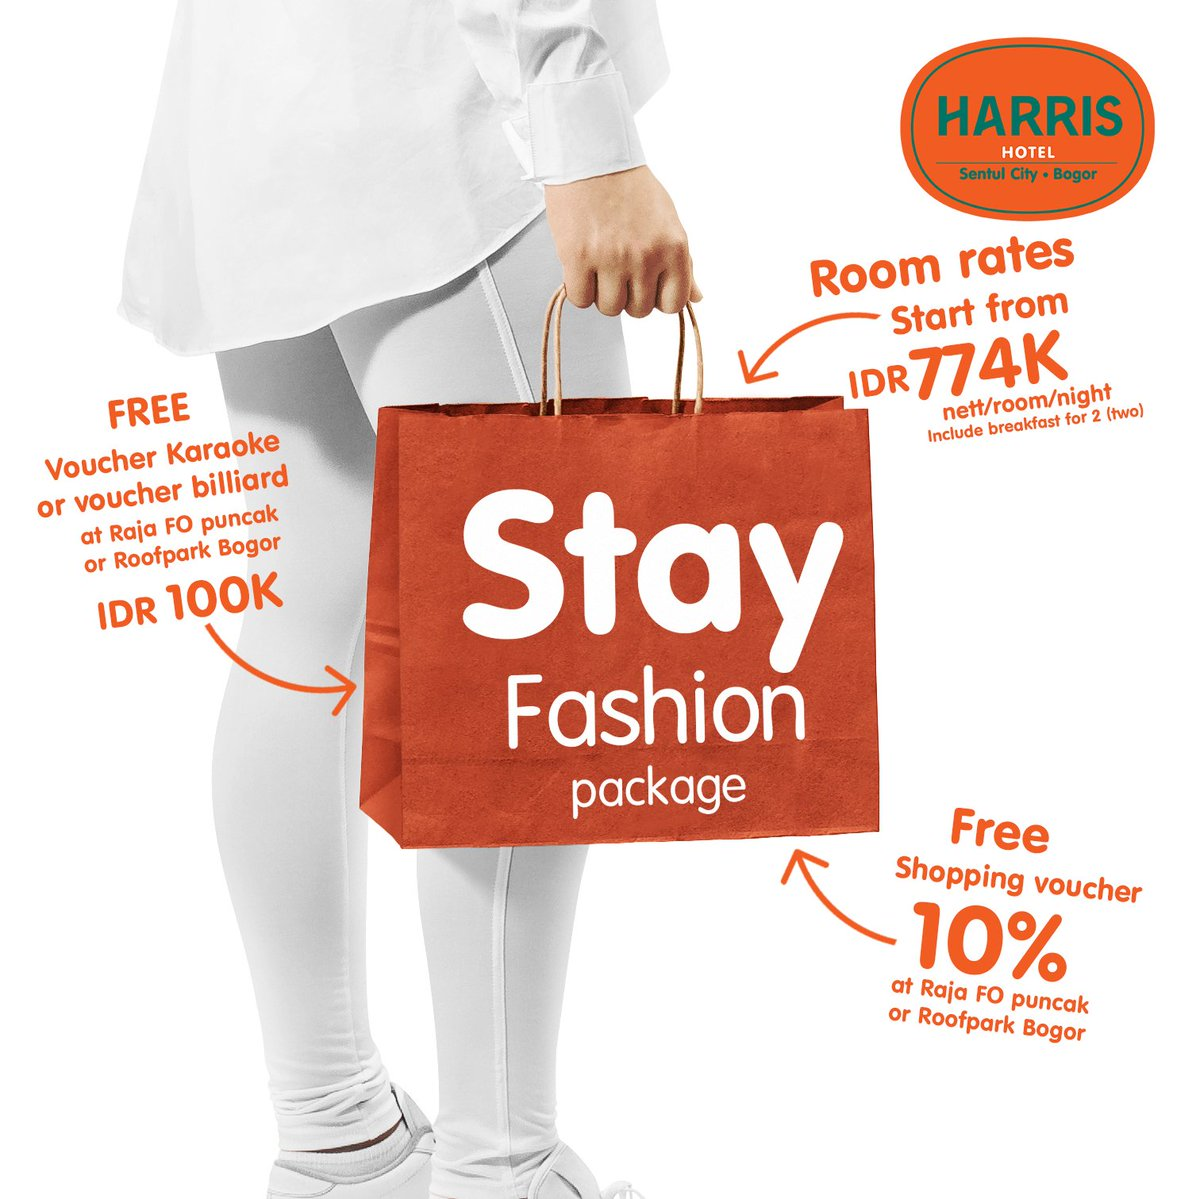 Harris Sentul City Harrissentul Twitter Chic Classic Wedding Ring Cincin Kawin Tunangan Pernikahan 2 And Raja Factory Outlet Gives You Ultimate Experience With Stayfashion Package Start From Idr 774000 Nett Night